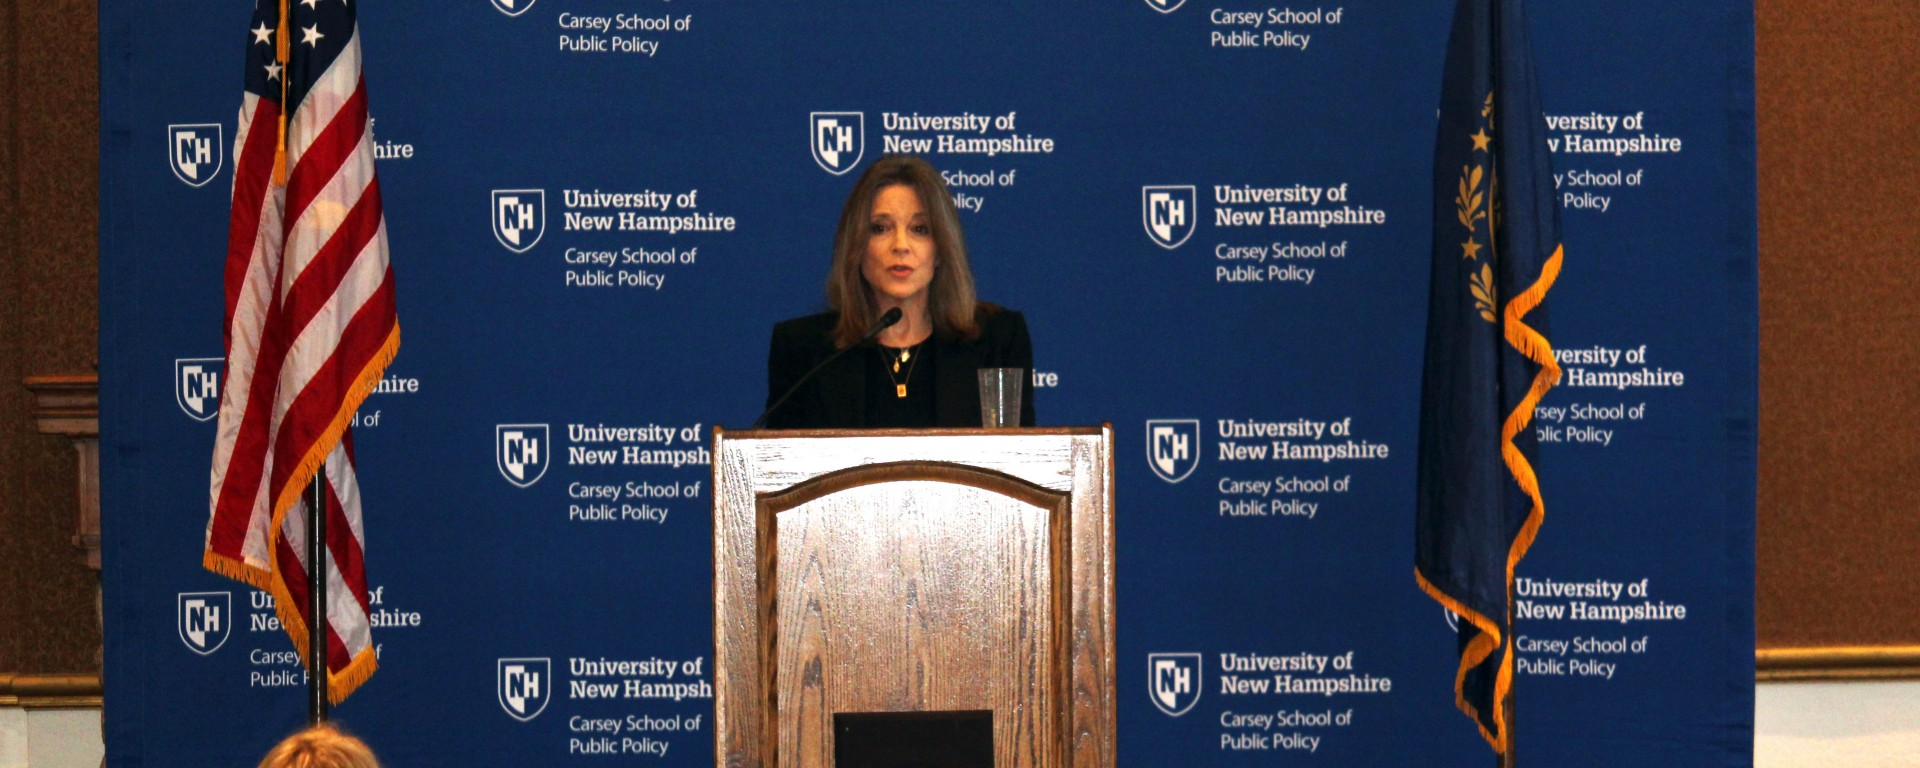 Marianne Williamson speaking at the Carsey School at UNH.